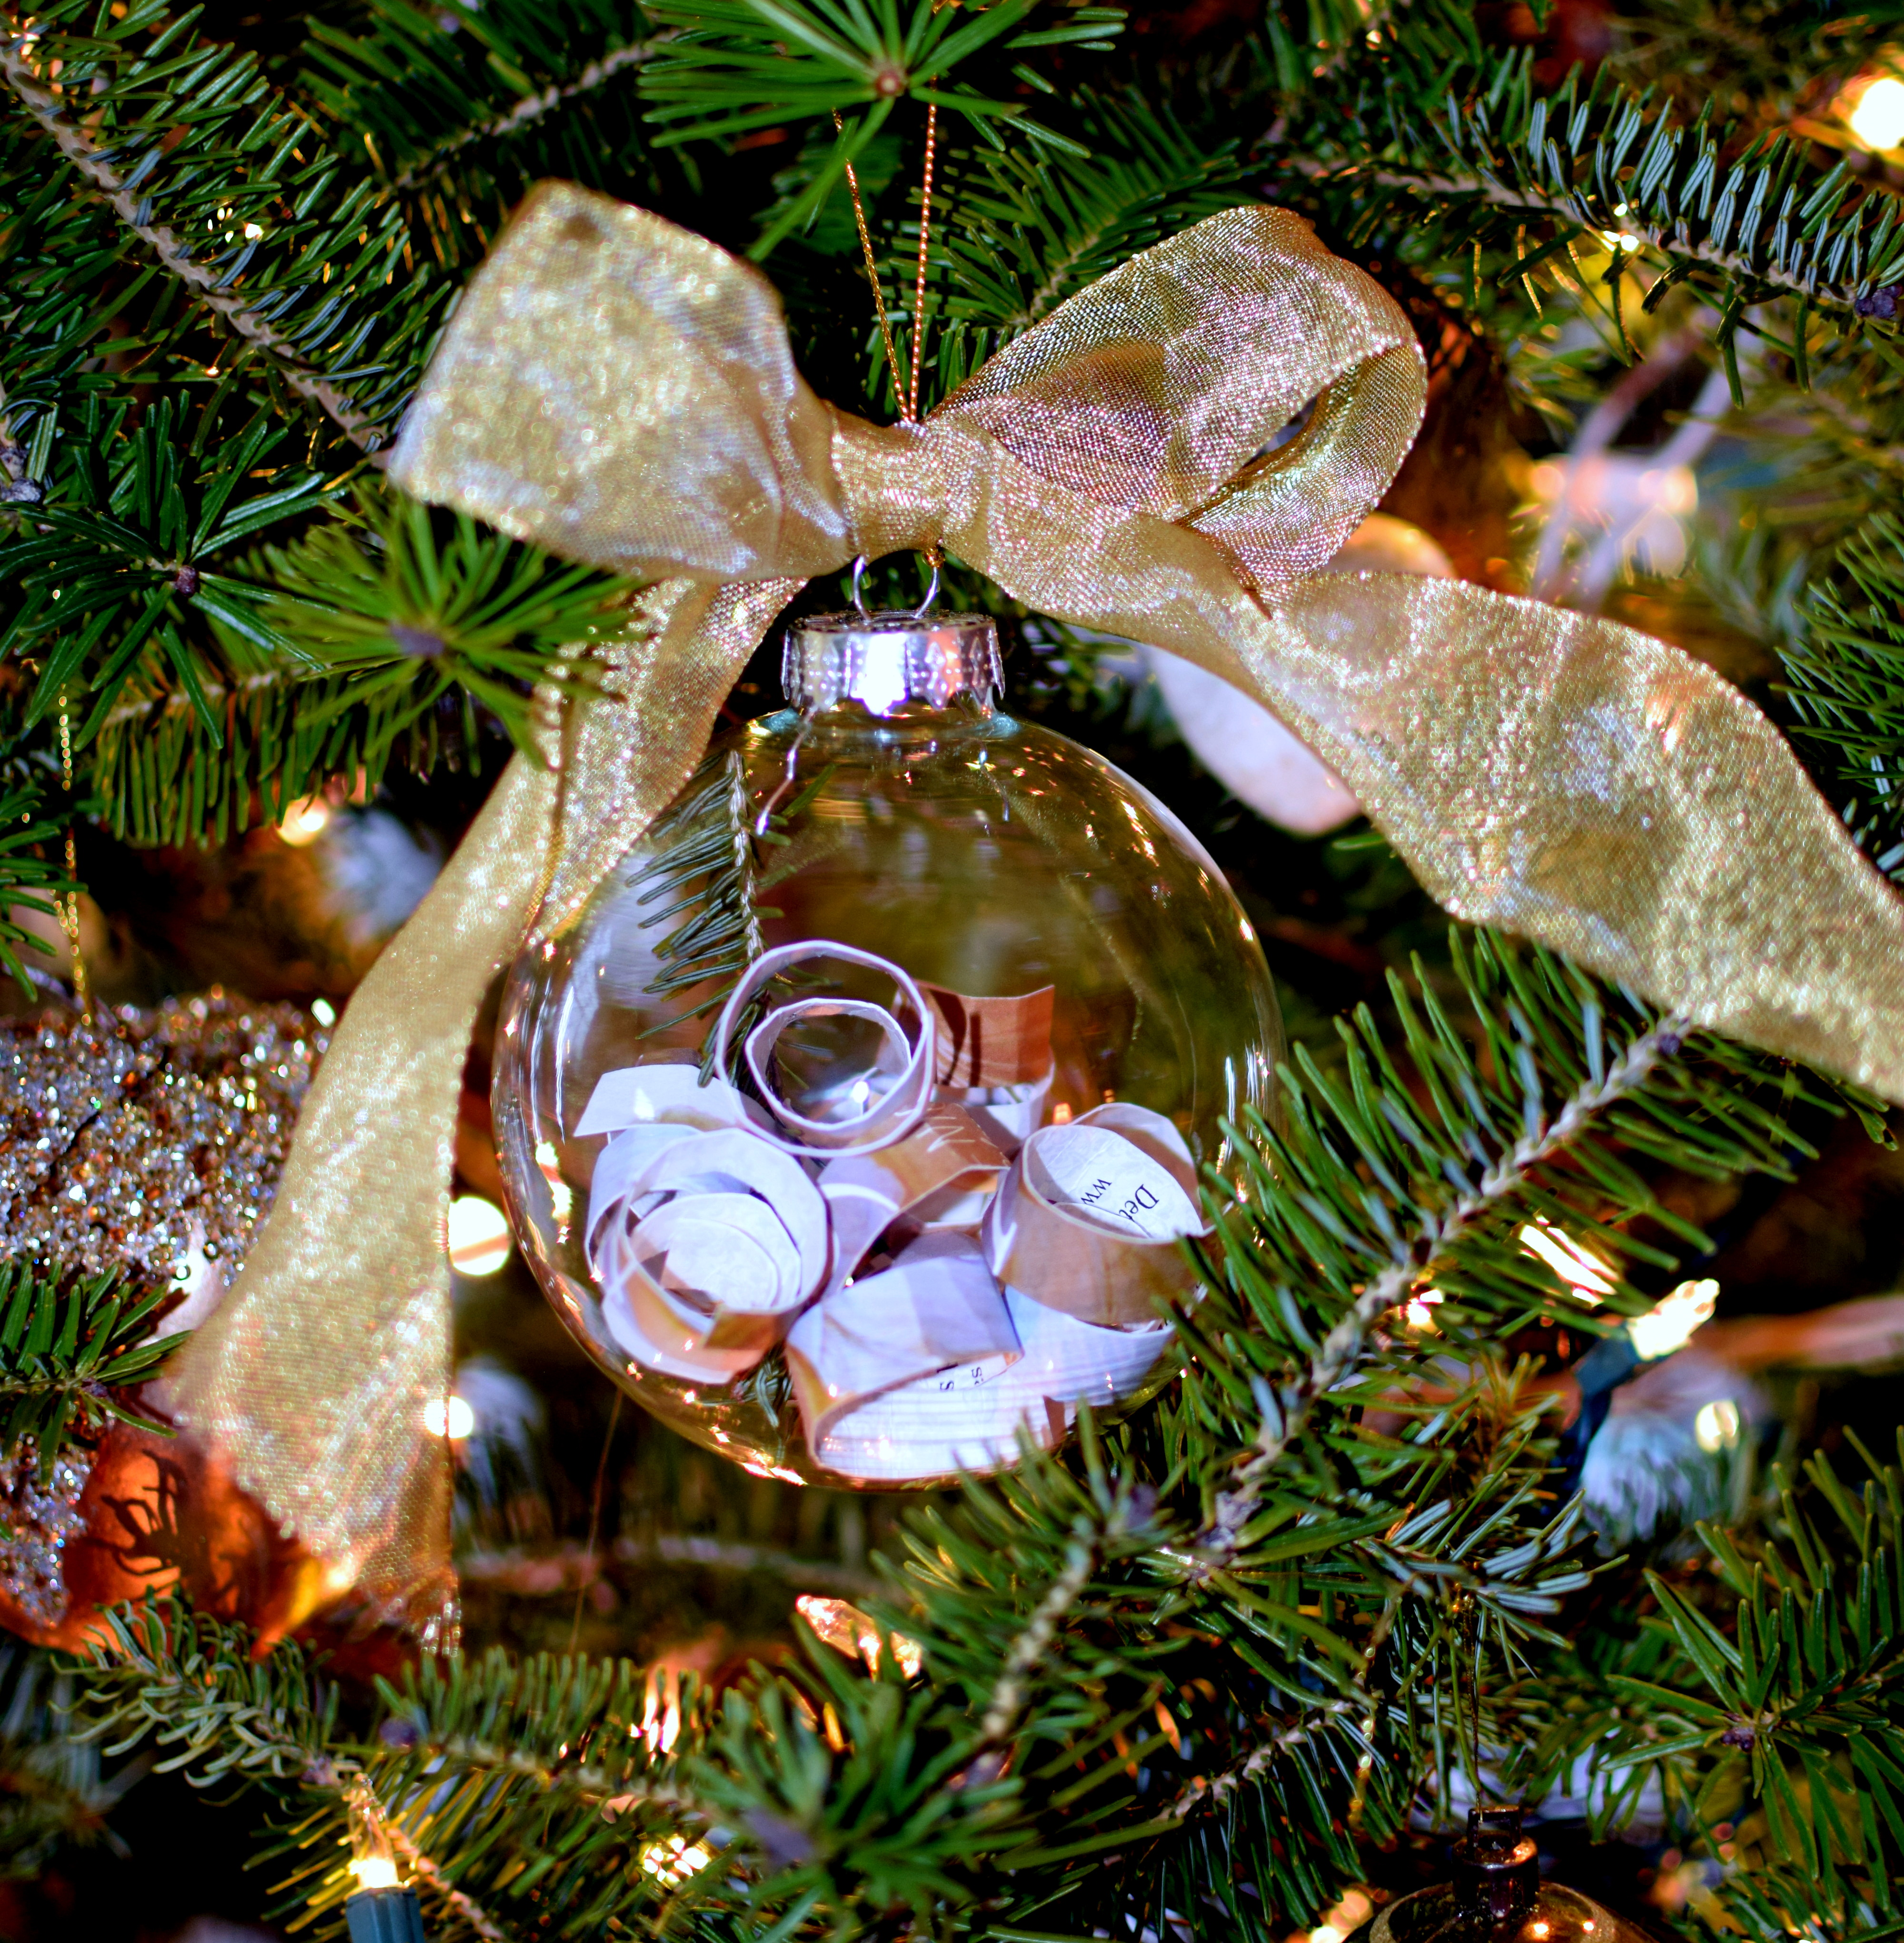 Pierogi christmas ornament - Luckily There Are Some Cute Diy Projects You Can Do Like These Christmas Ornaments